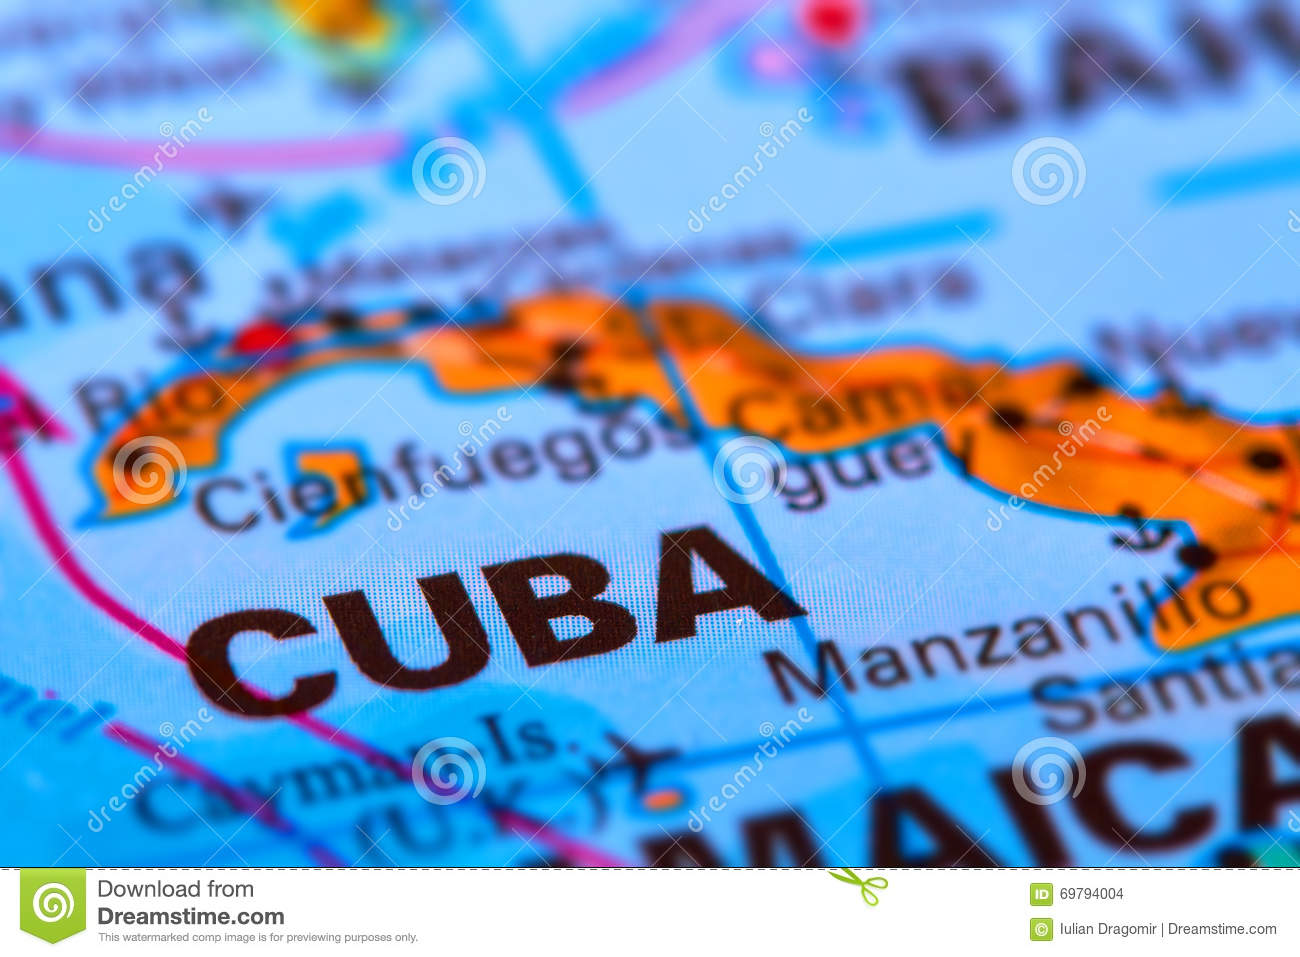 Cuba on the Map